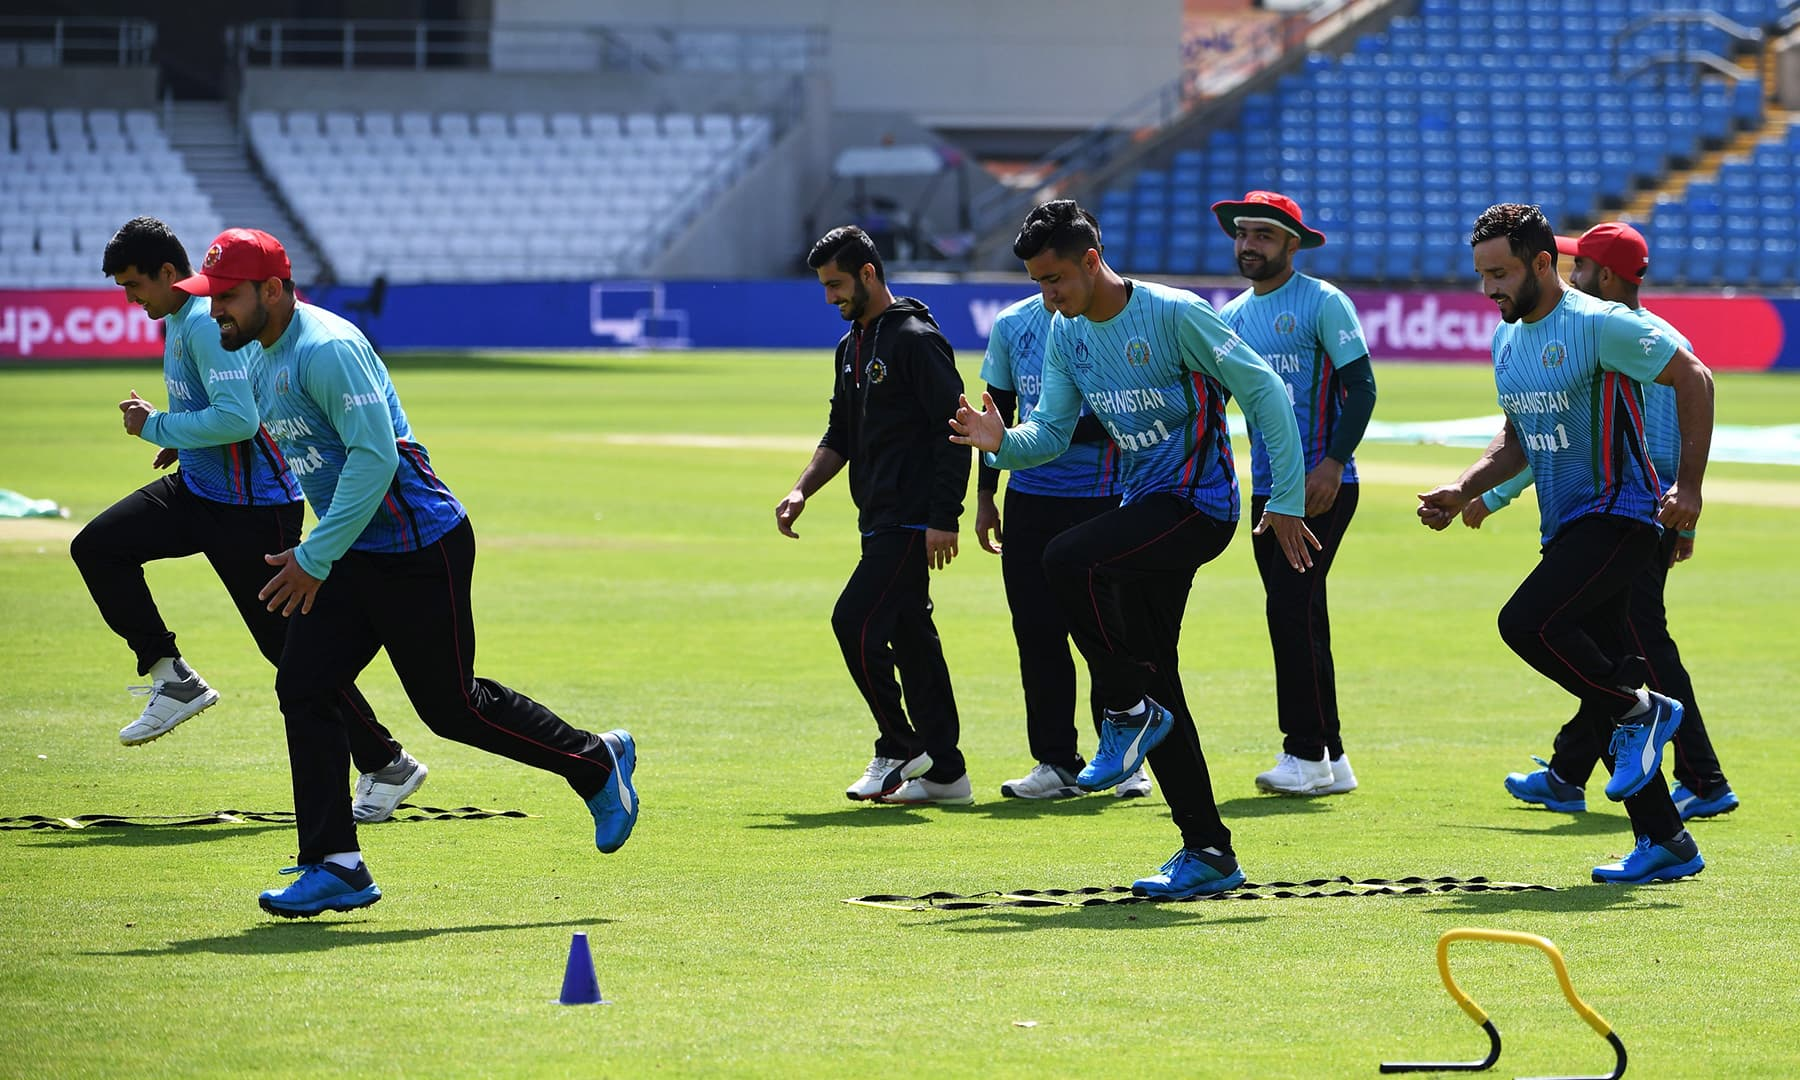 Afghanistan players take part in a training session at Headingly. — AFP